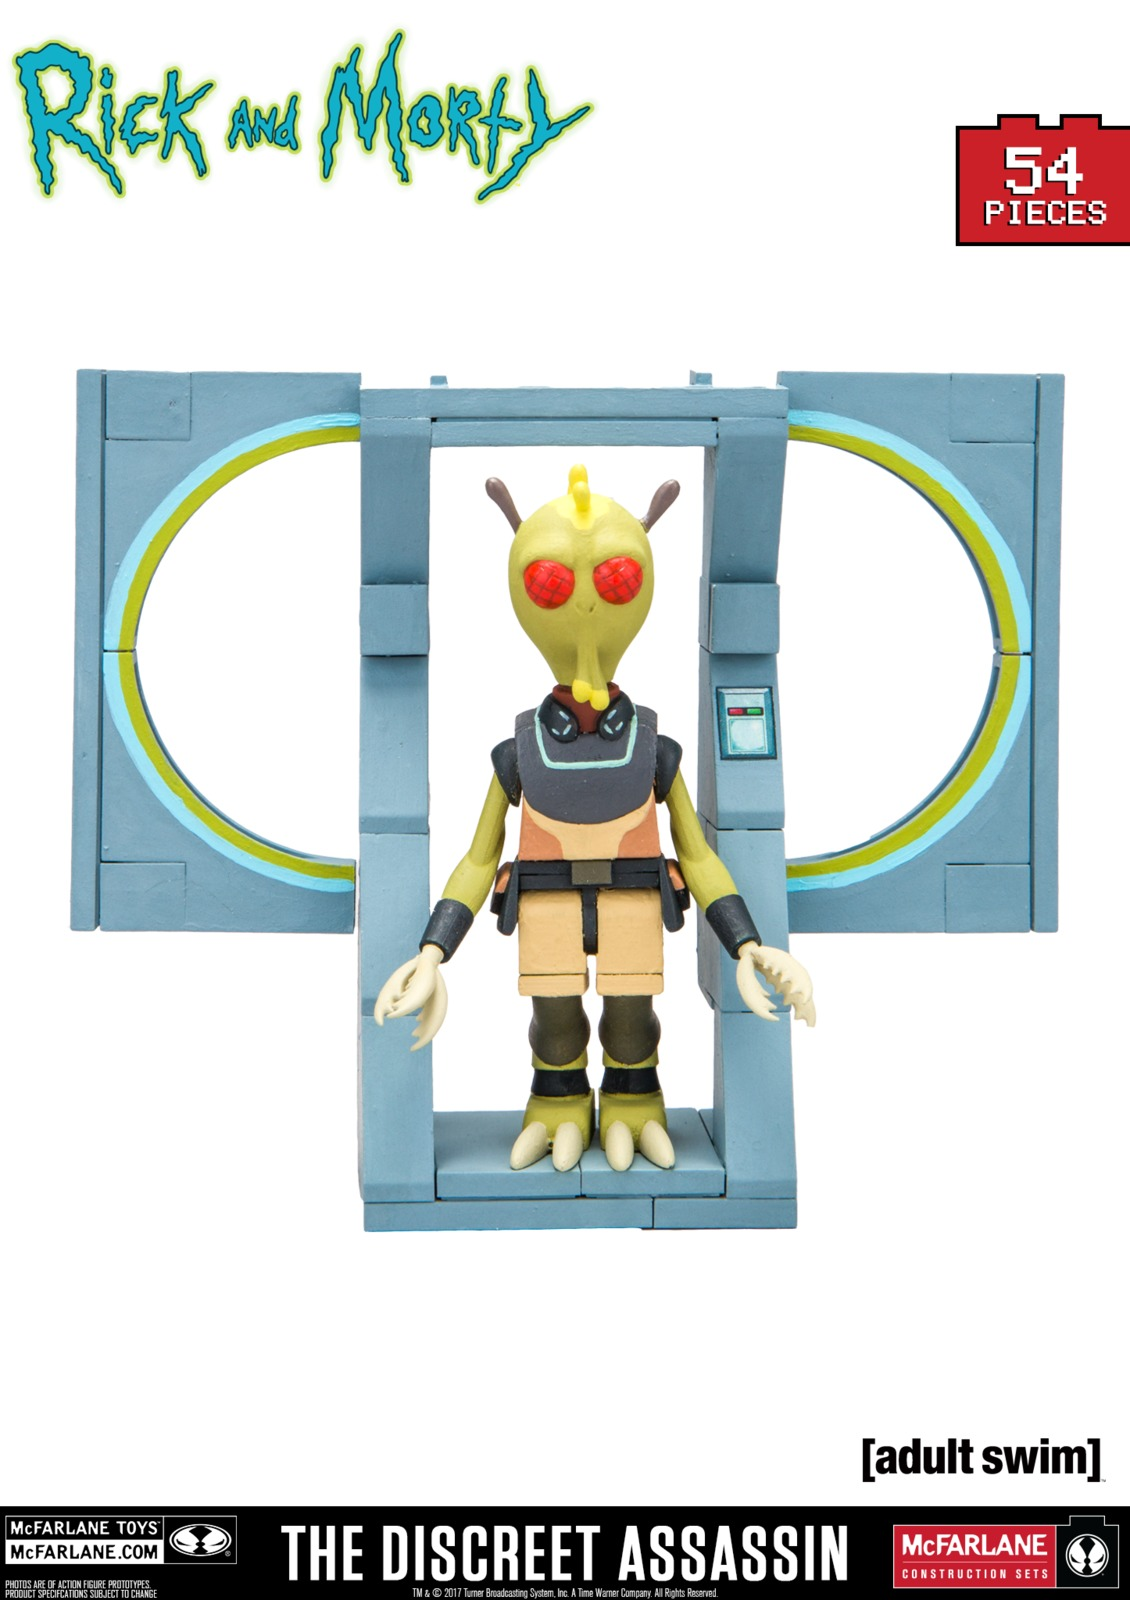 Rick and Morty: The Discreet Assassin - Micro Construction Set image